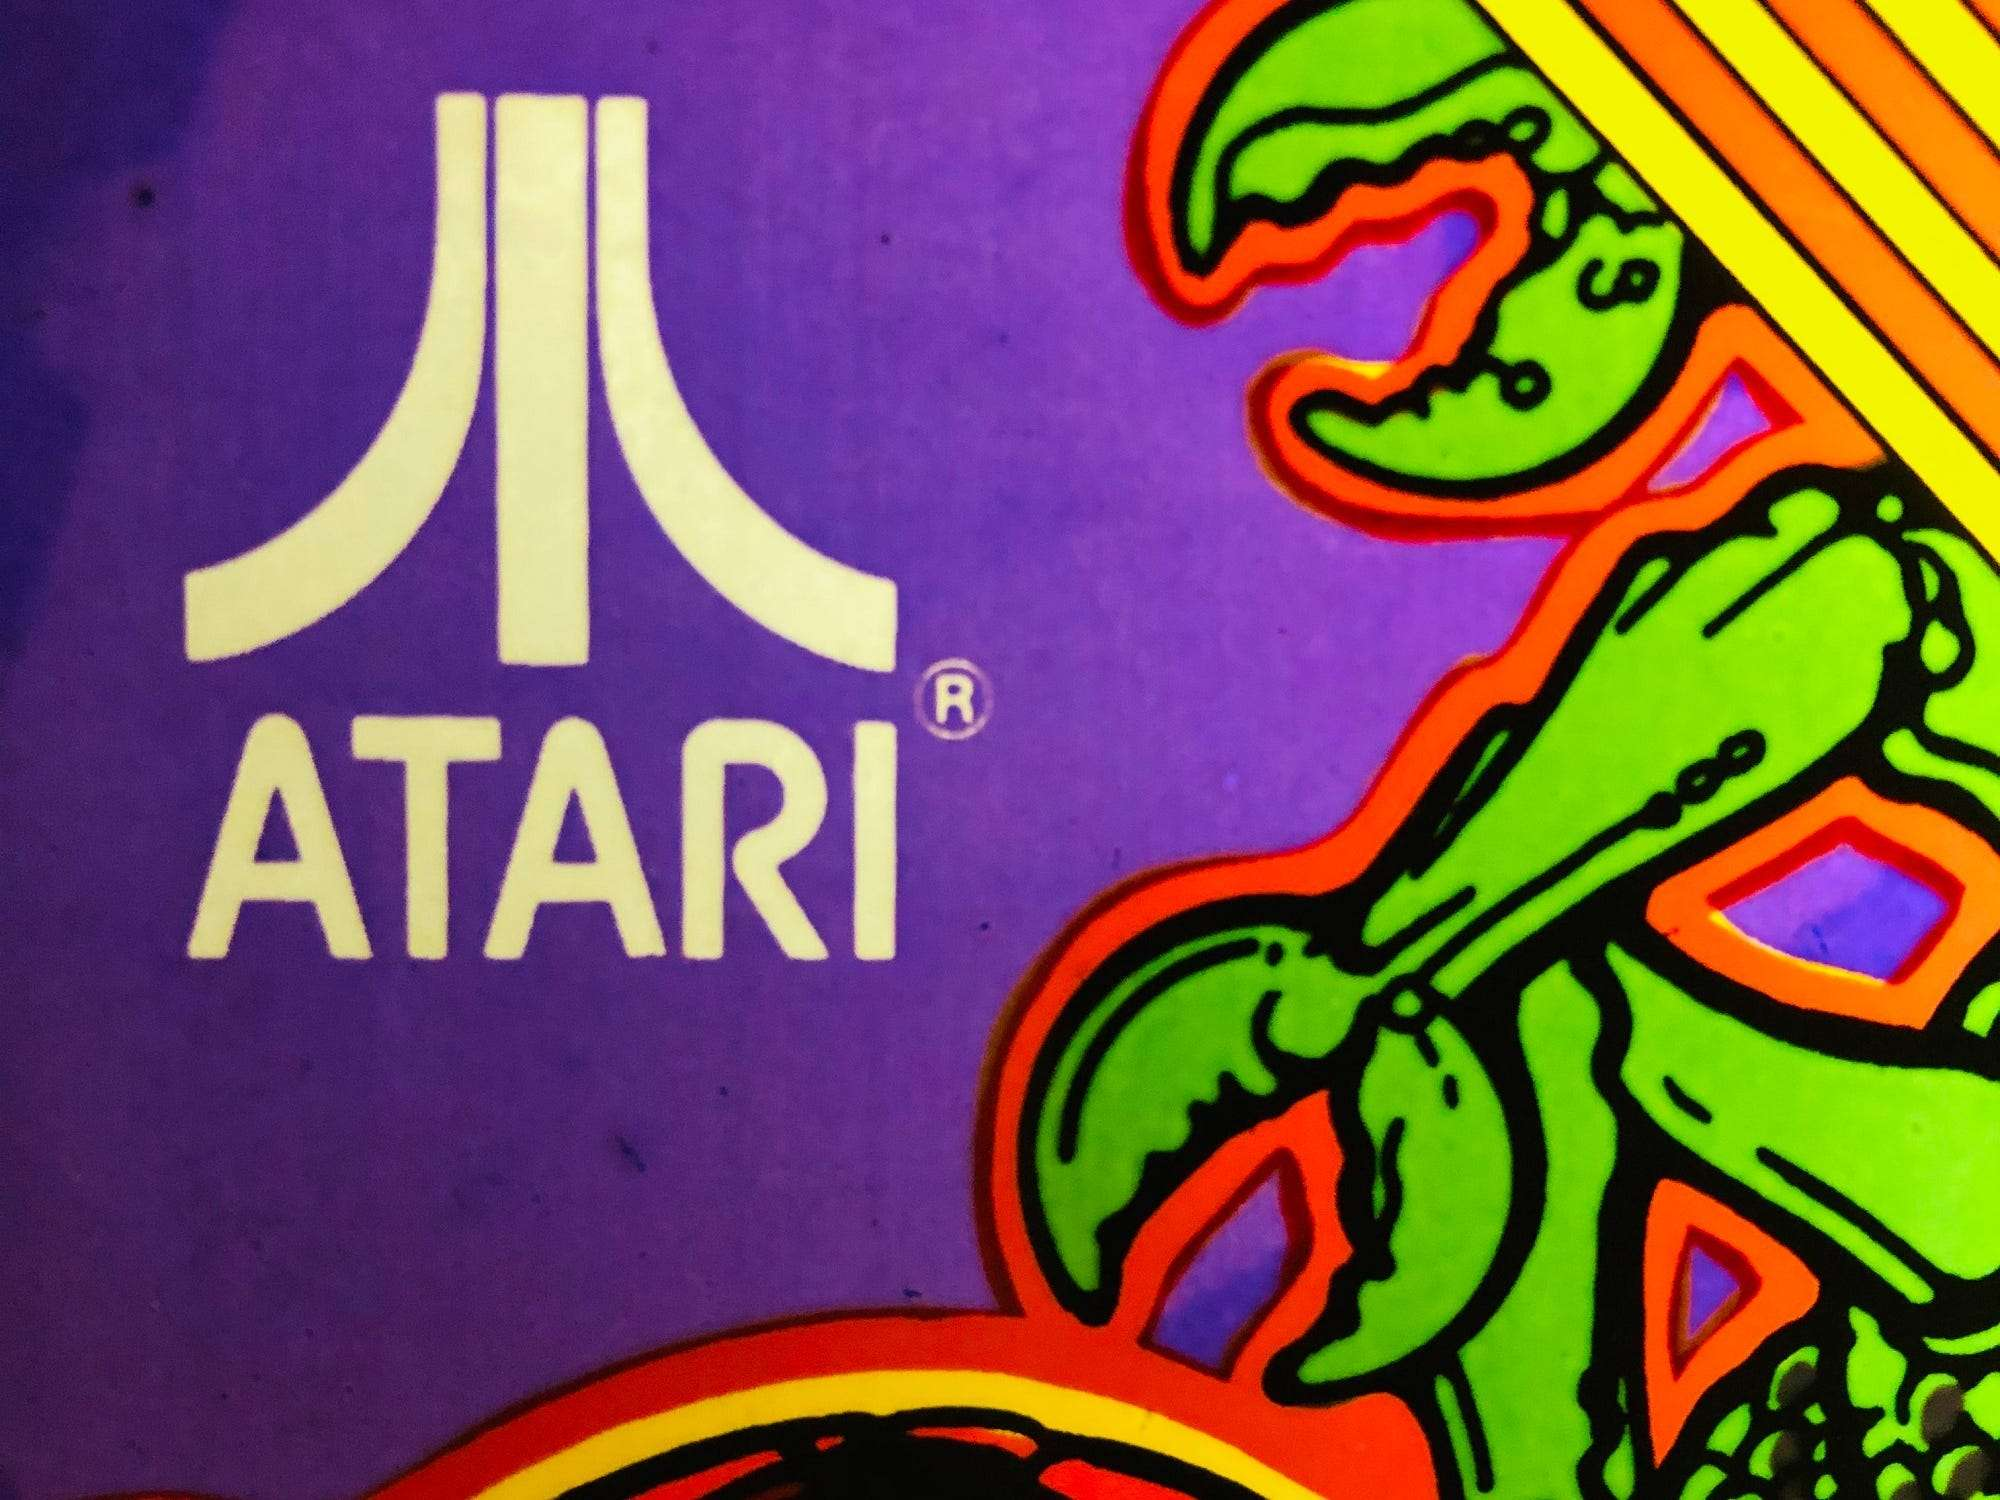 Atari is auctioning off a full-sized vintage 'Centipede' arcade set, along with digital memorabilia